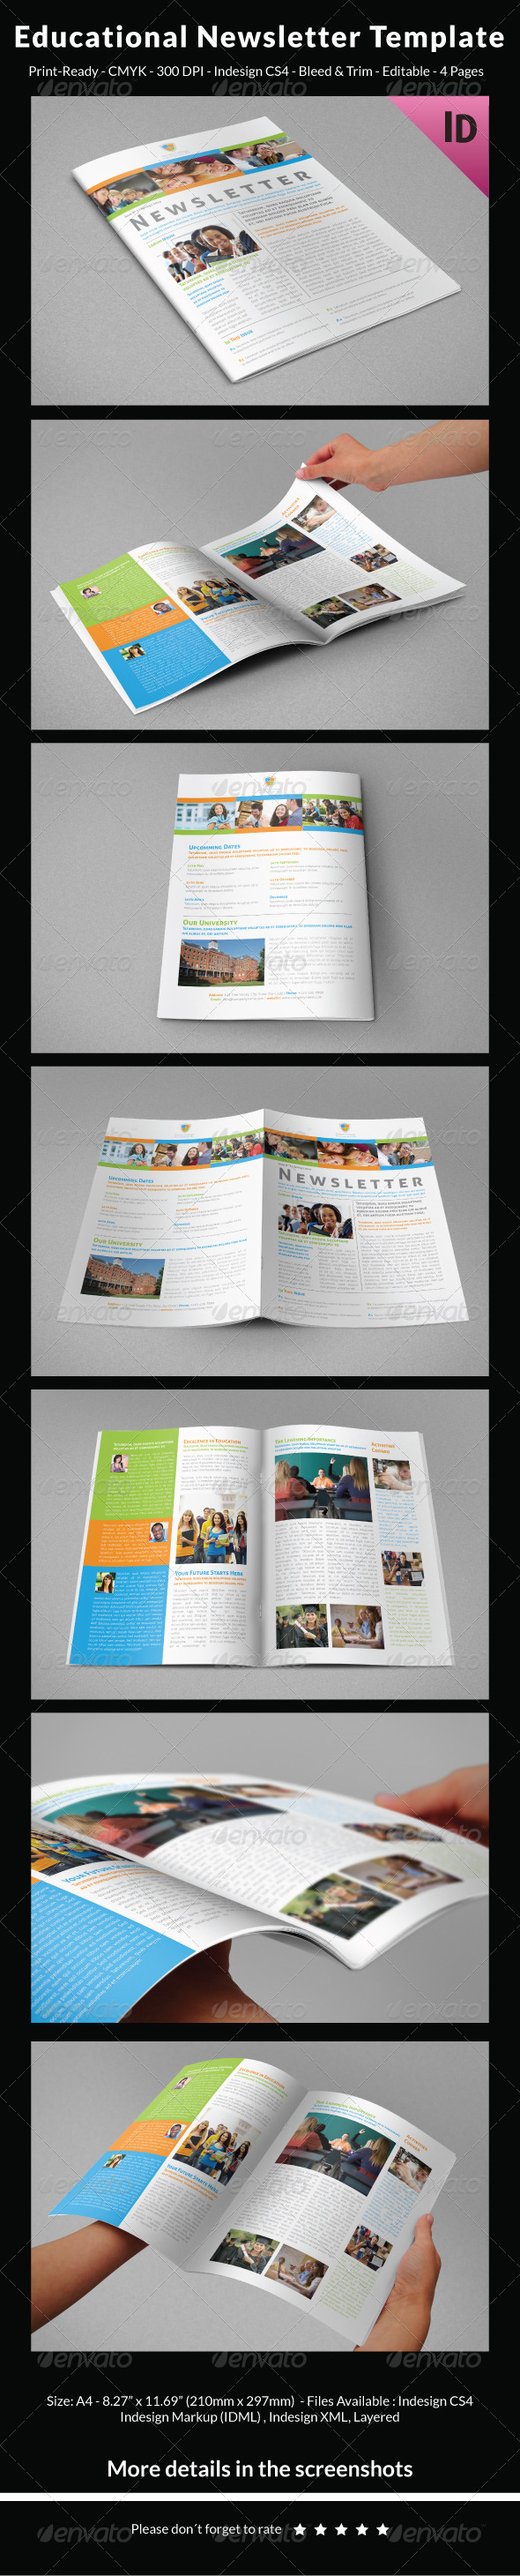 GraphicRiver Educational Newsletter Template 7675648